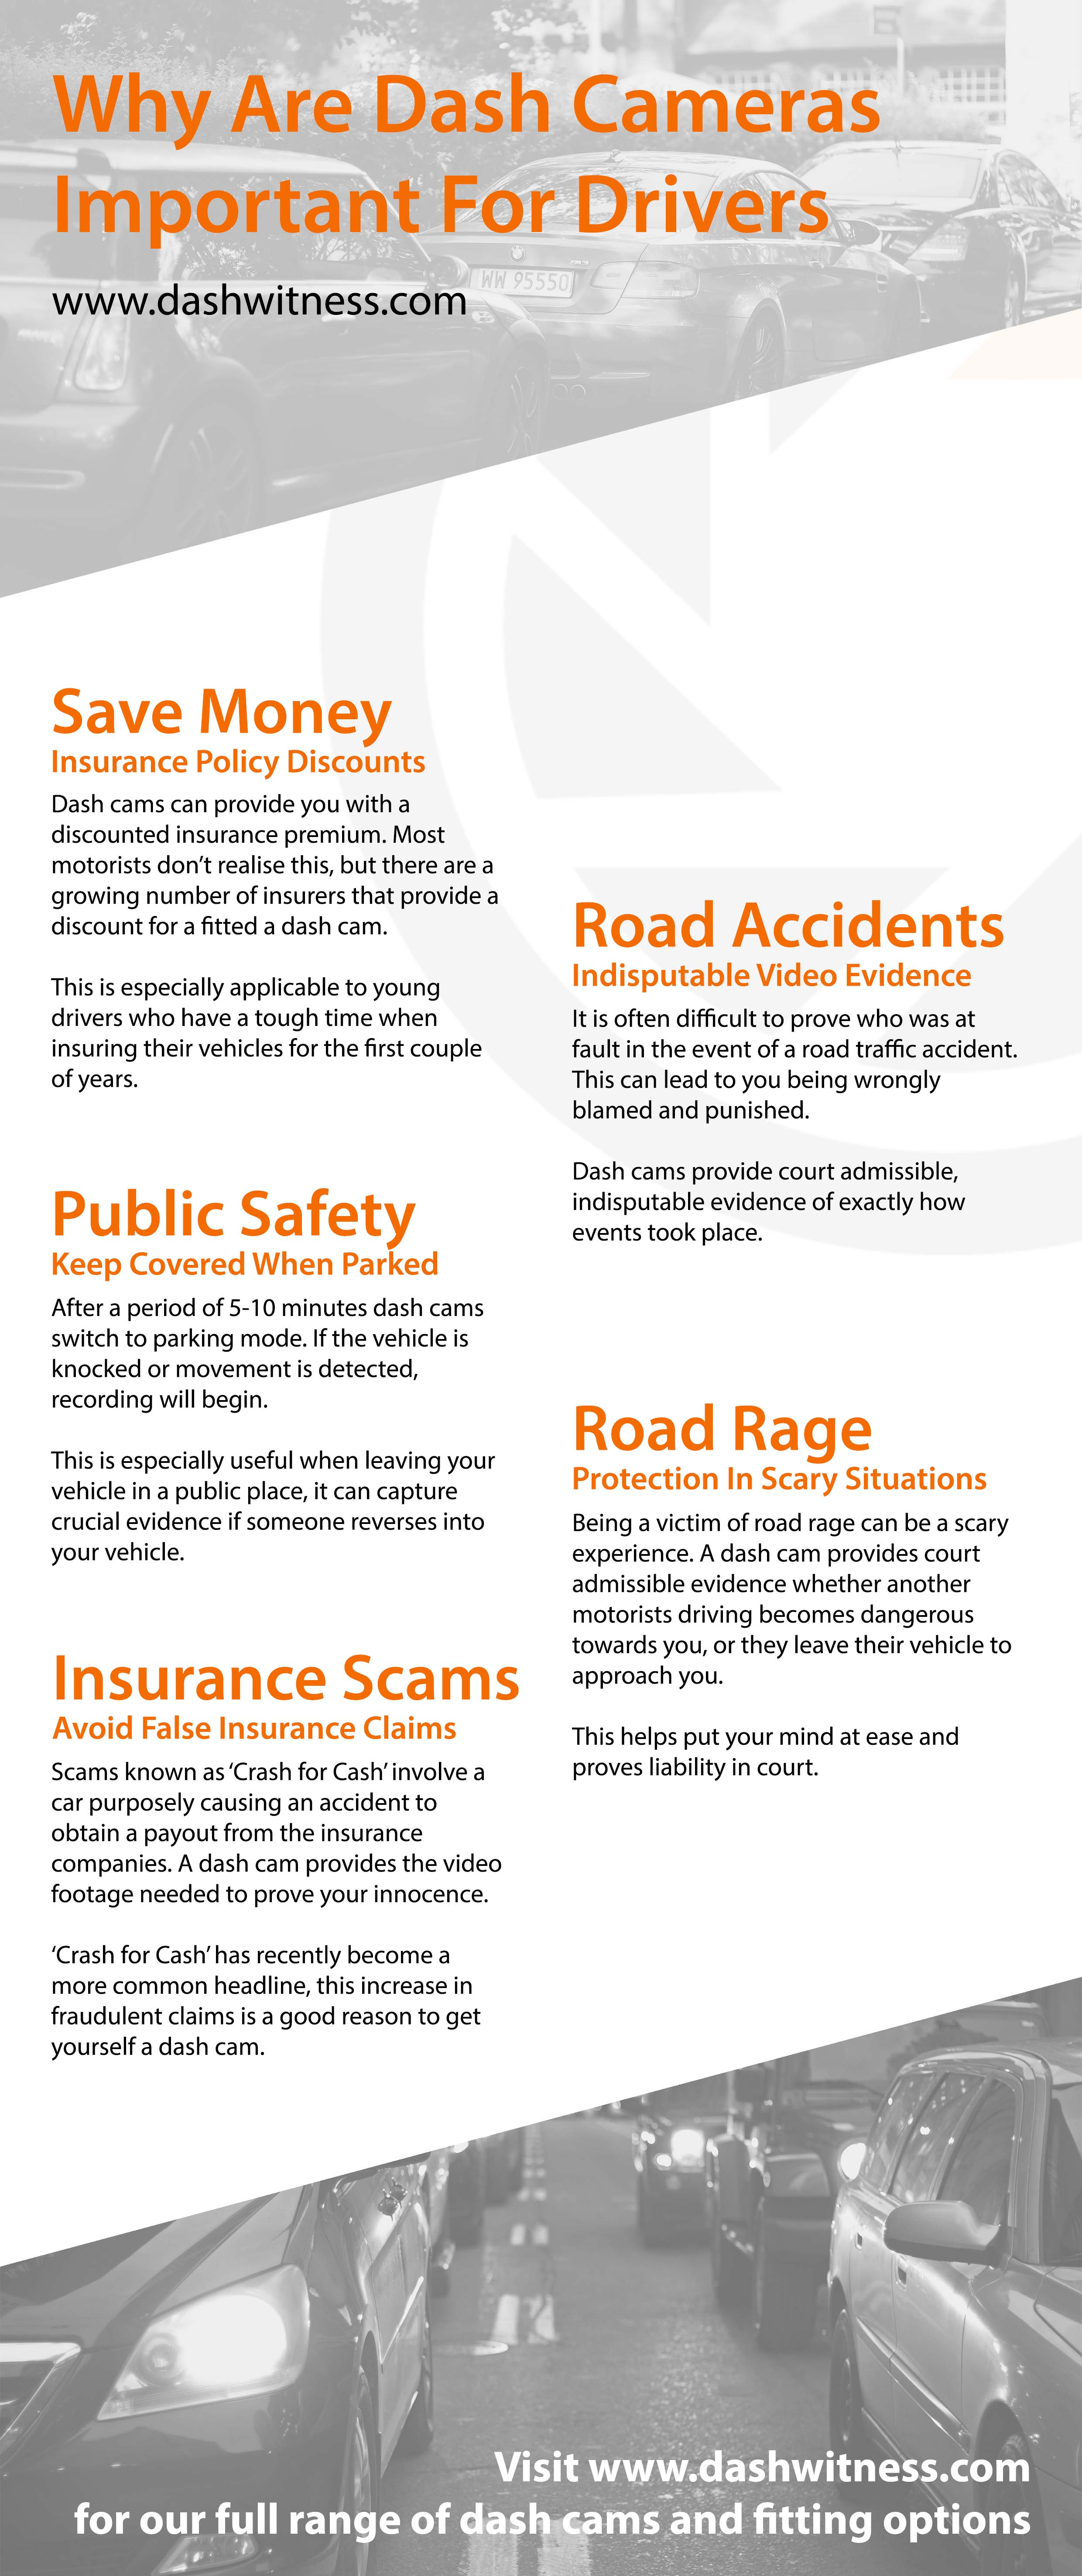 Why Are Dash Cams Important For Drivers